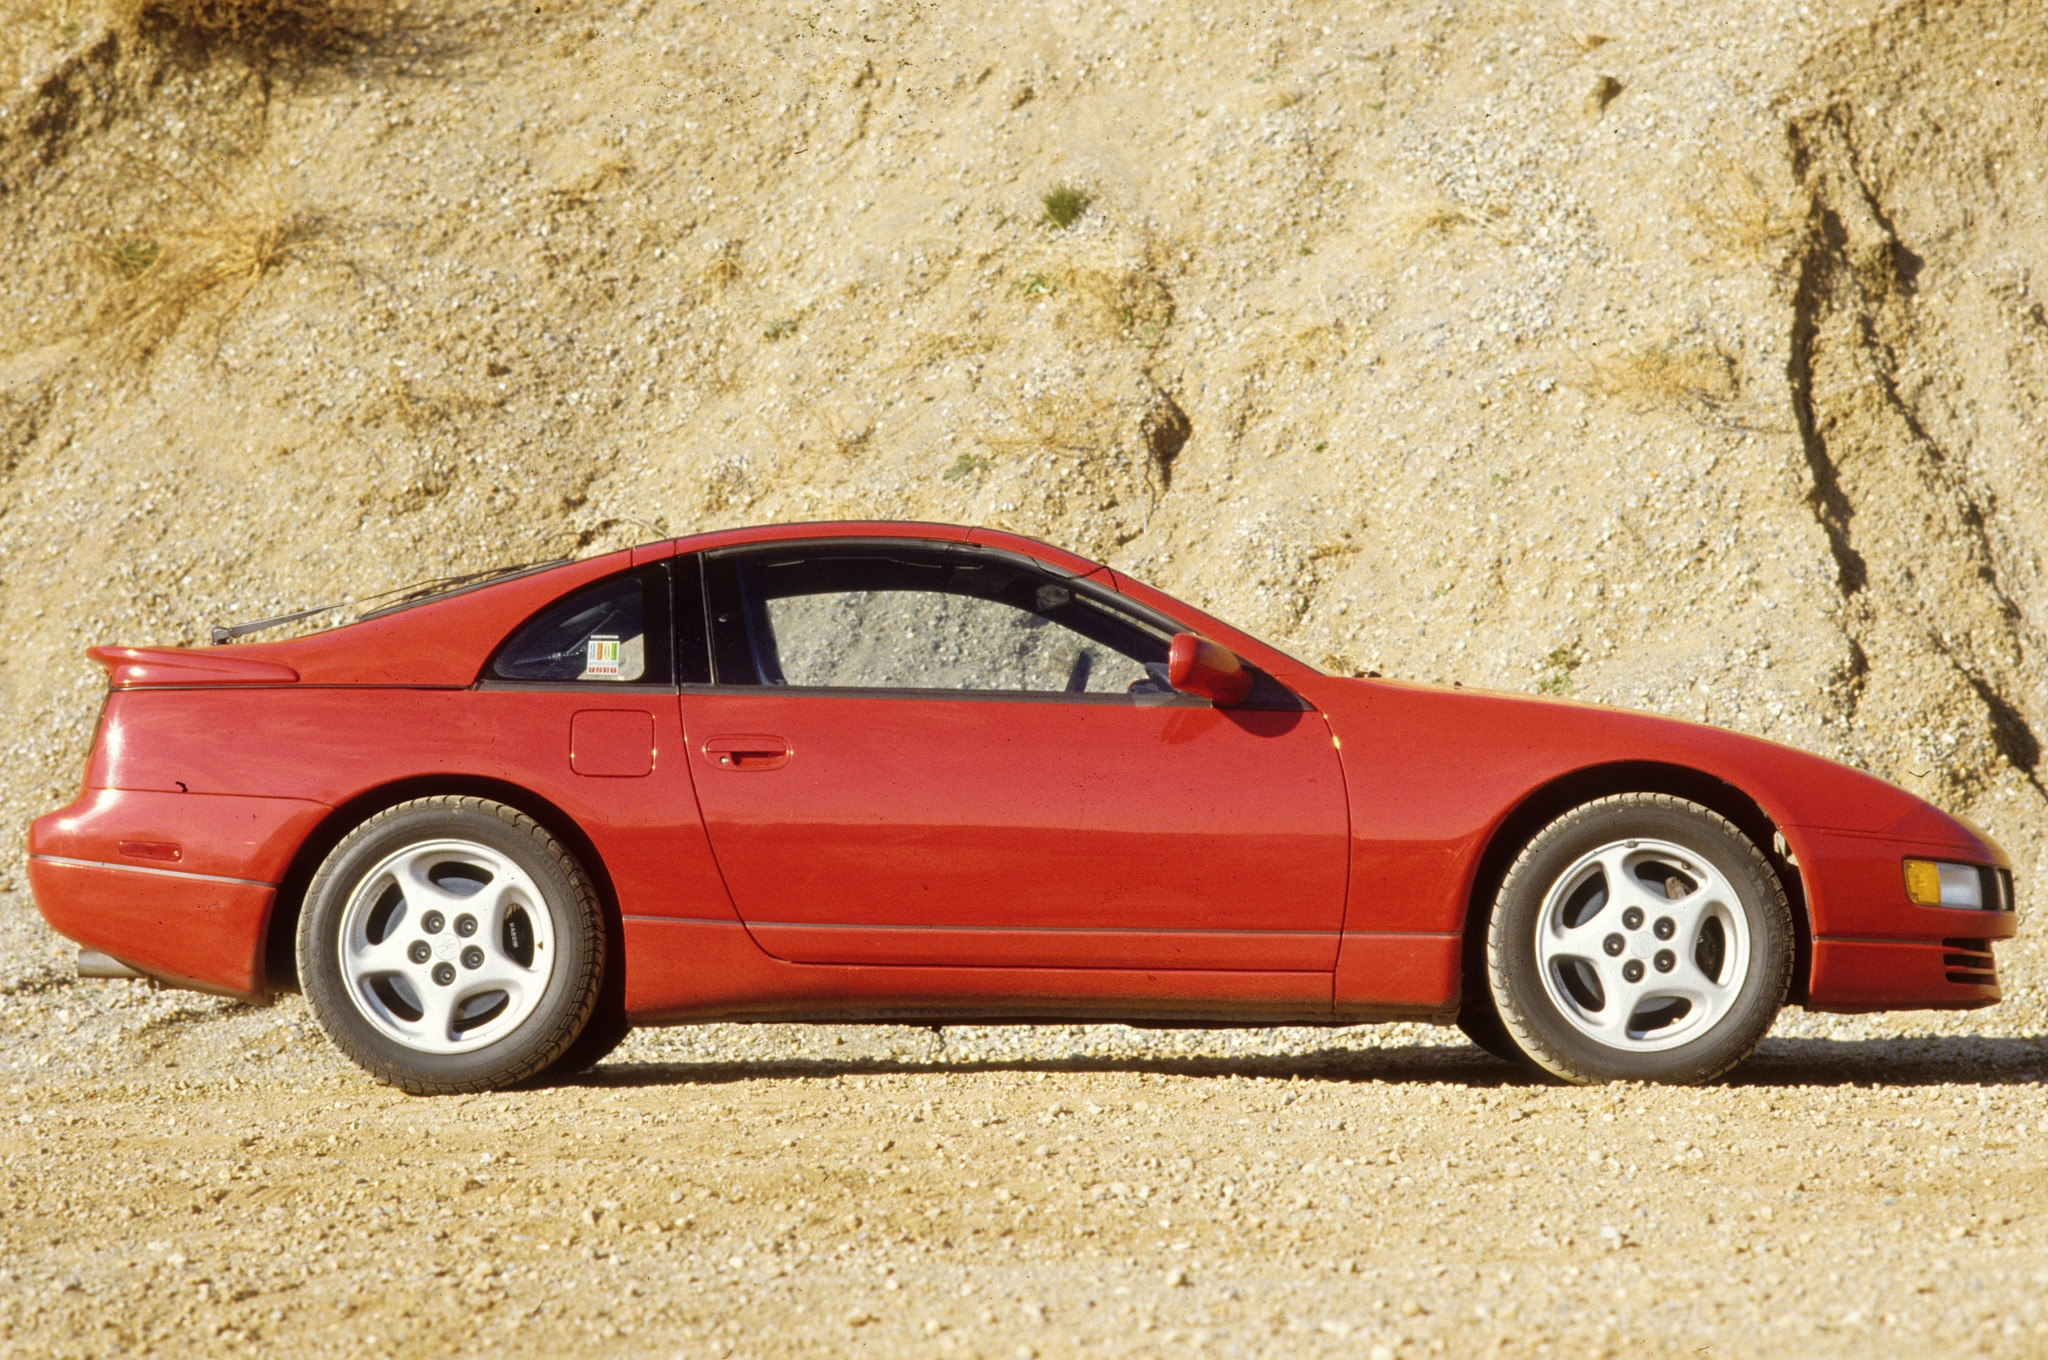 5 Japanese Cars That Shocked The Auto Industry 25 Years Ago